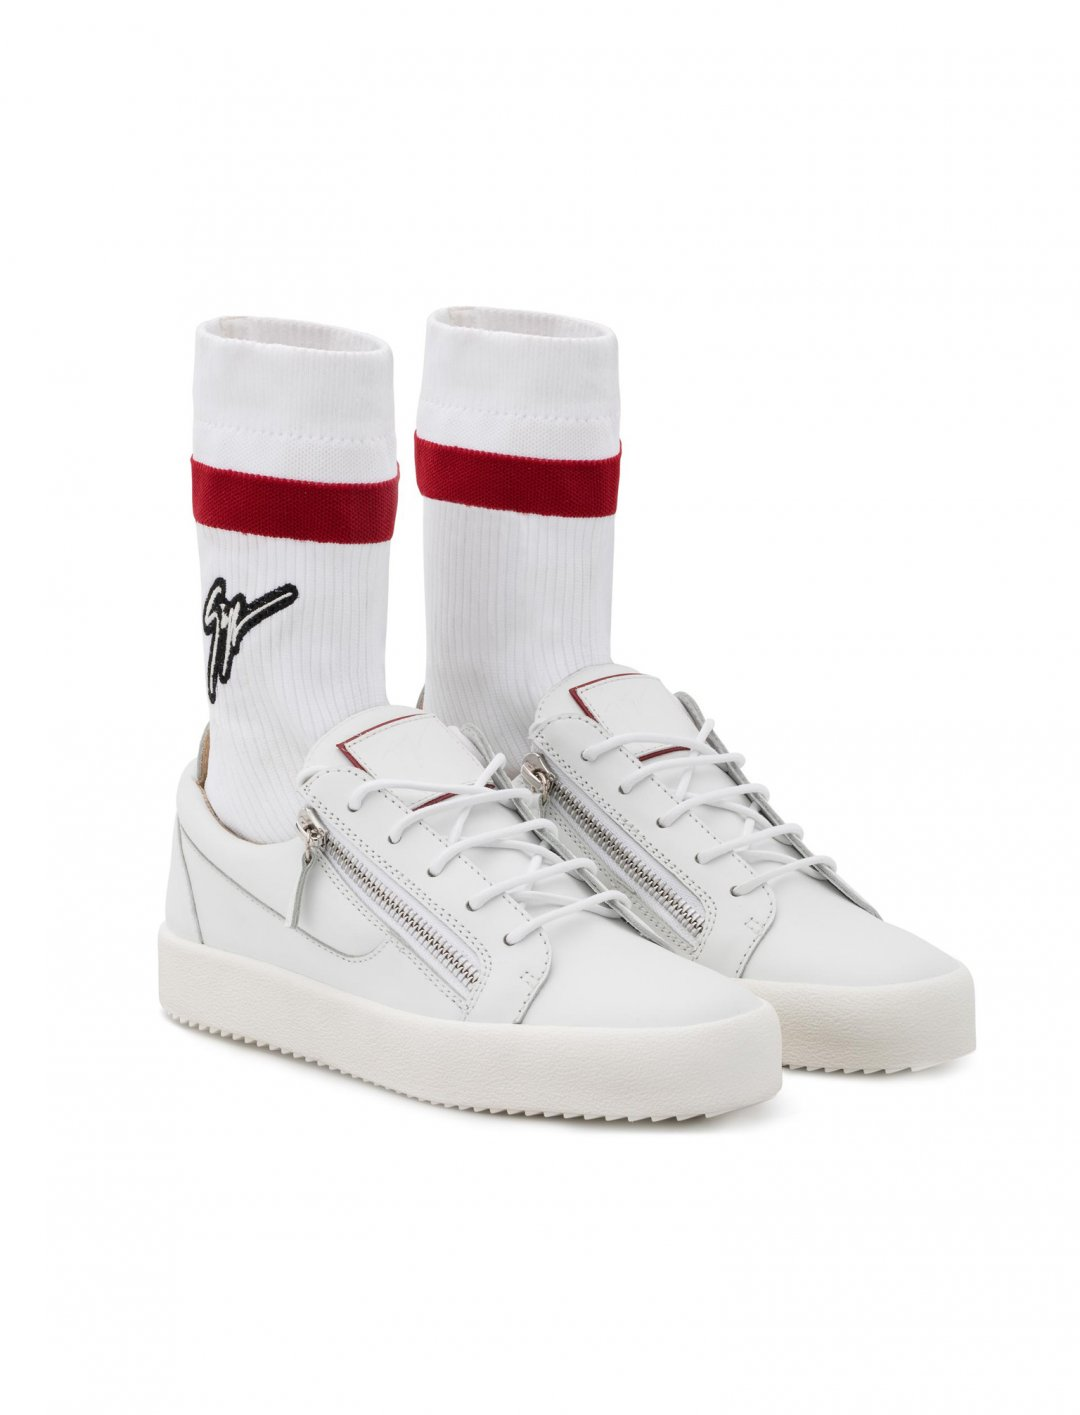 "Lotto Boyzz' Sock Sneaker {""id"":12,""product_section_id"":1,""name"":""Shoes"",""order"":12} Giuseppe Zanotti"